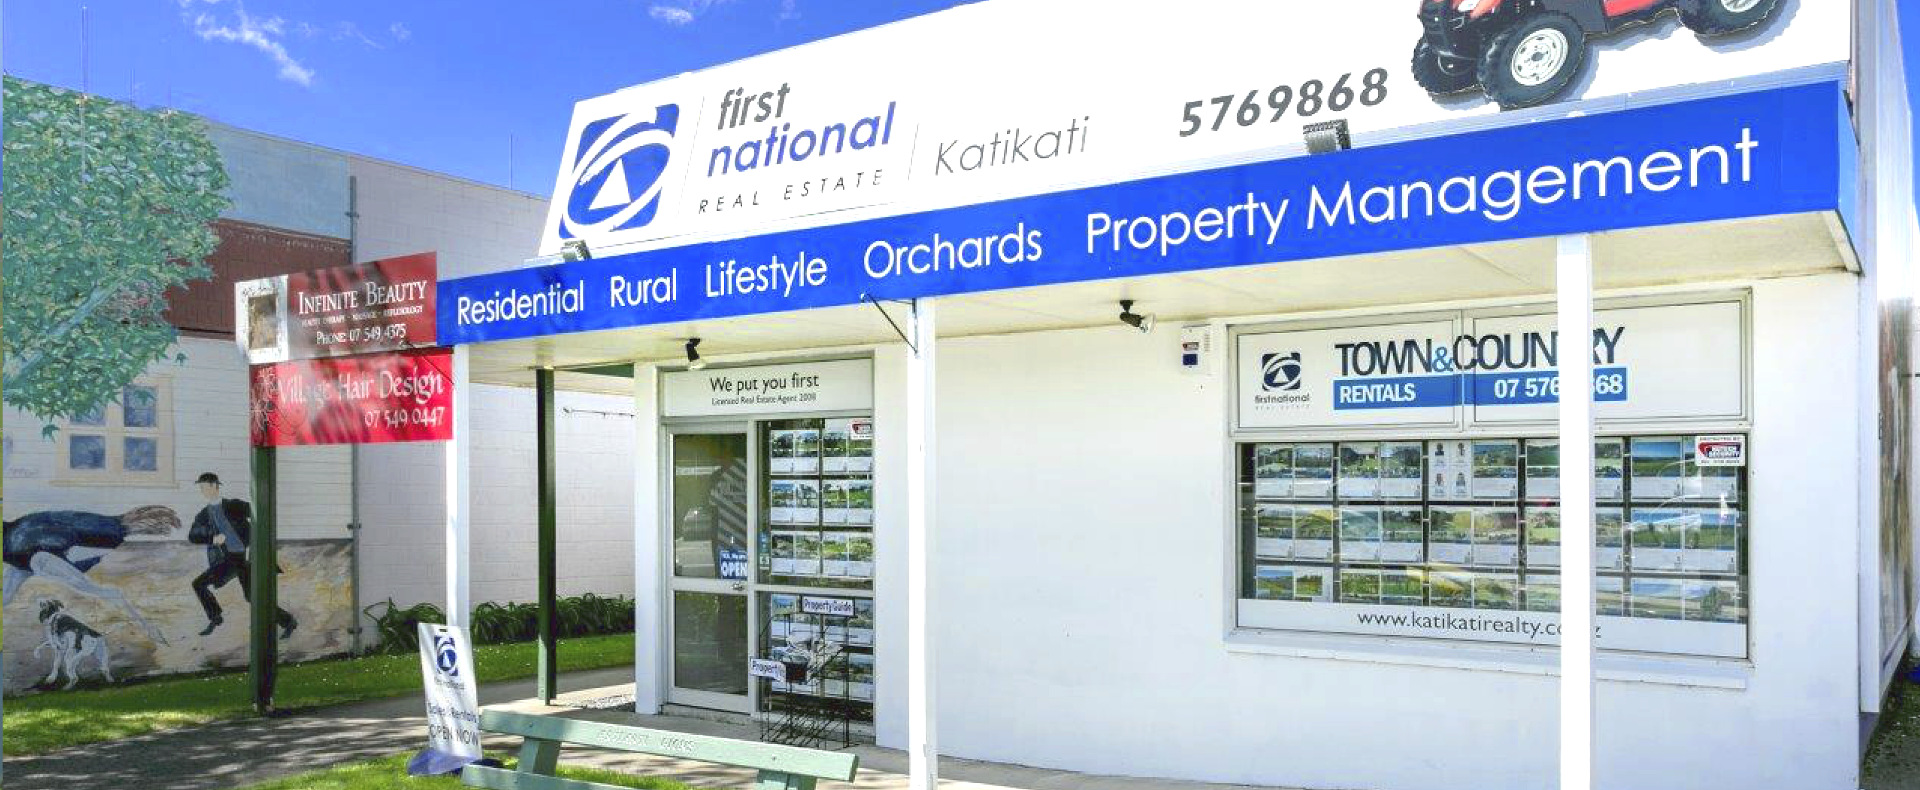 Katikati First National